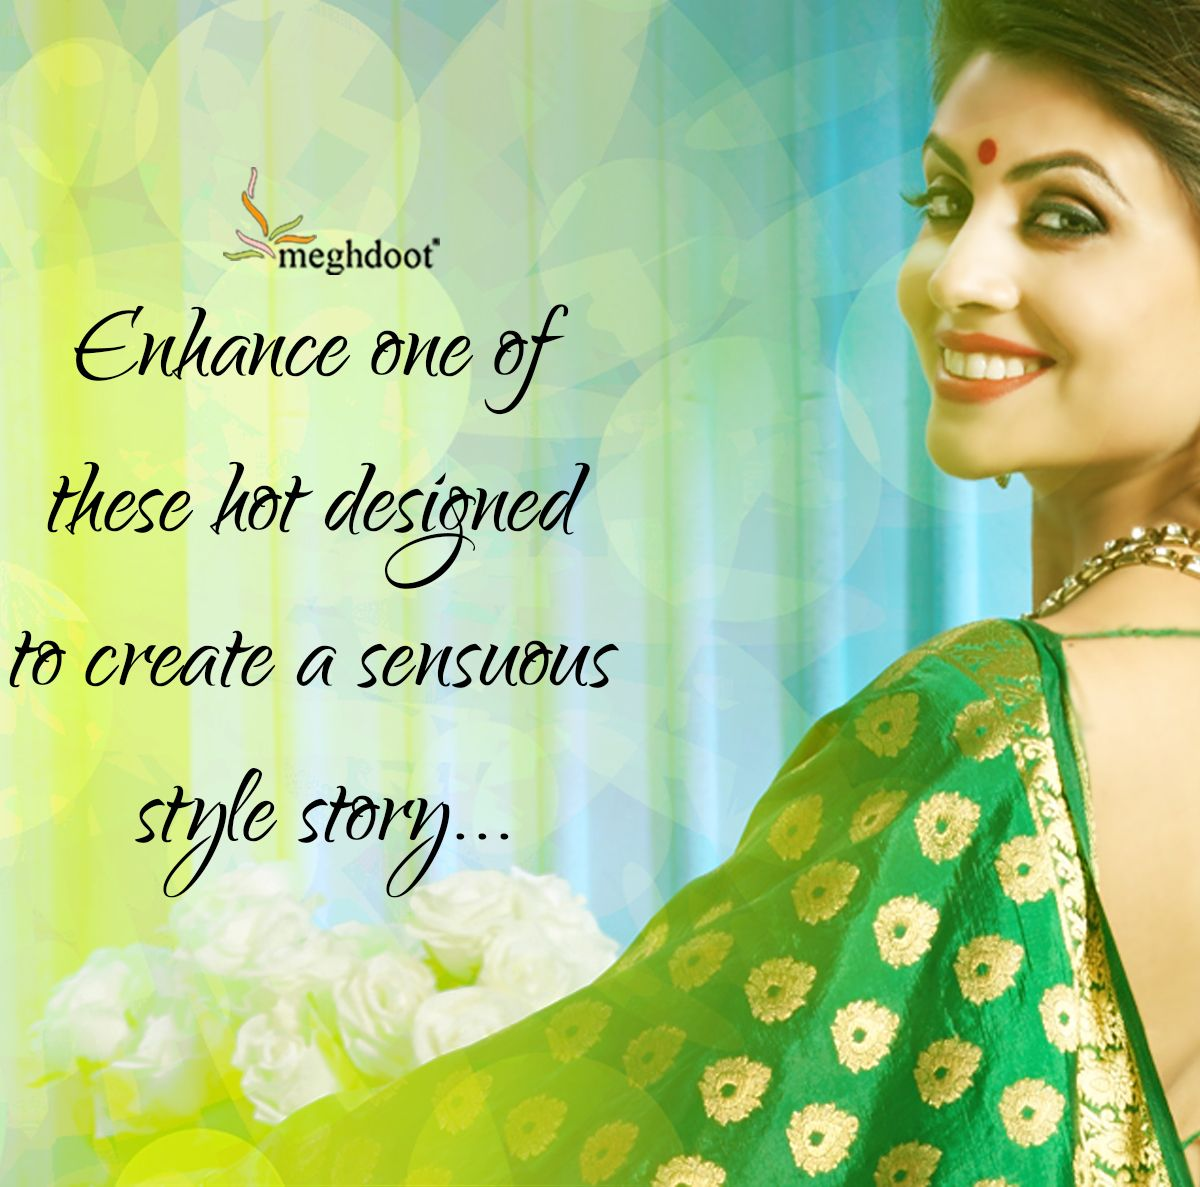 Thought Of The Day Totd Attitude Meghdoot Saree